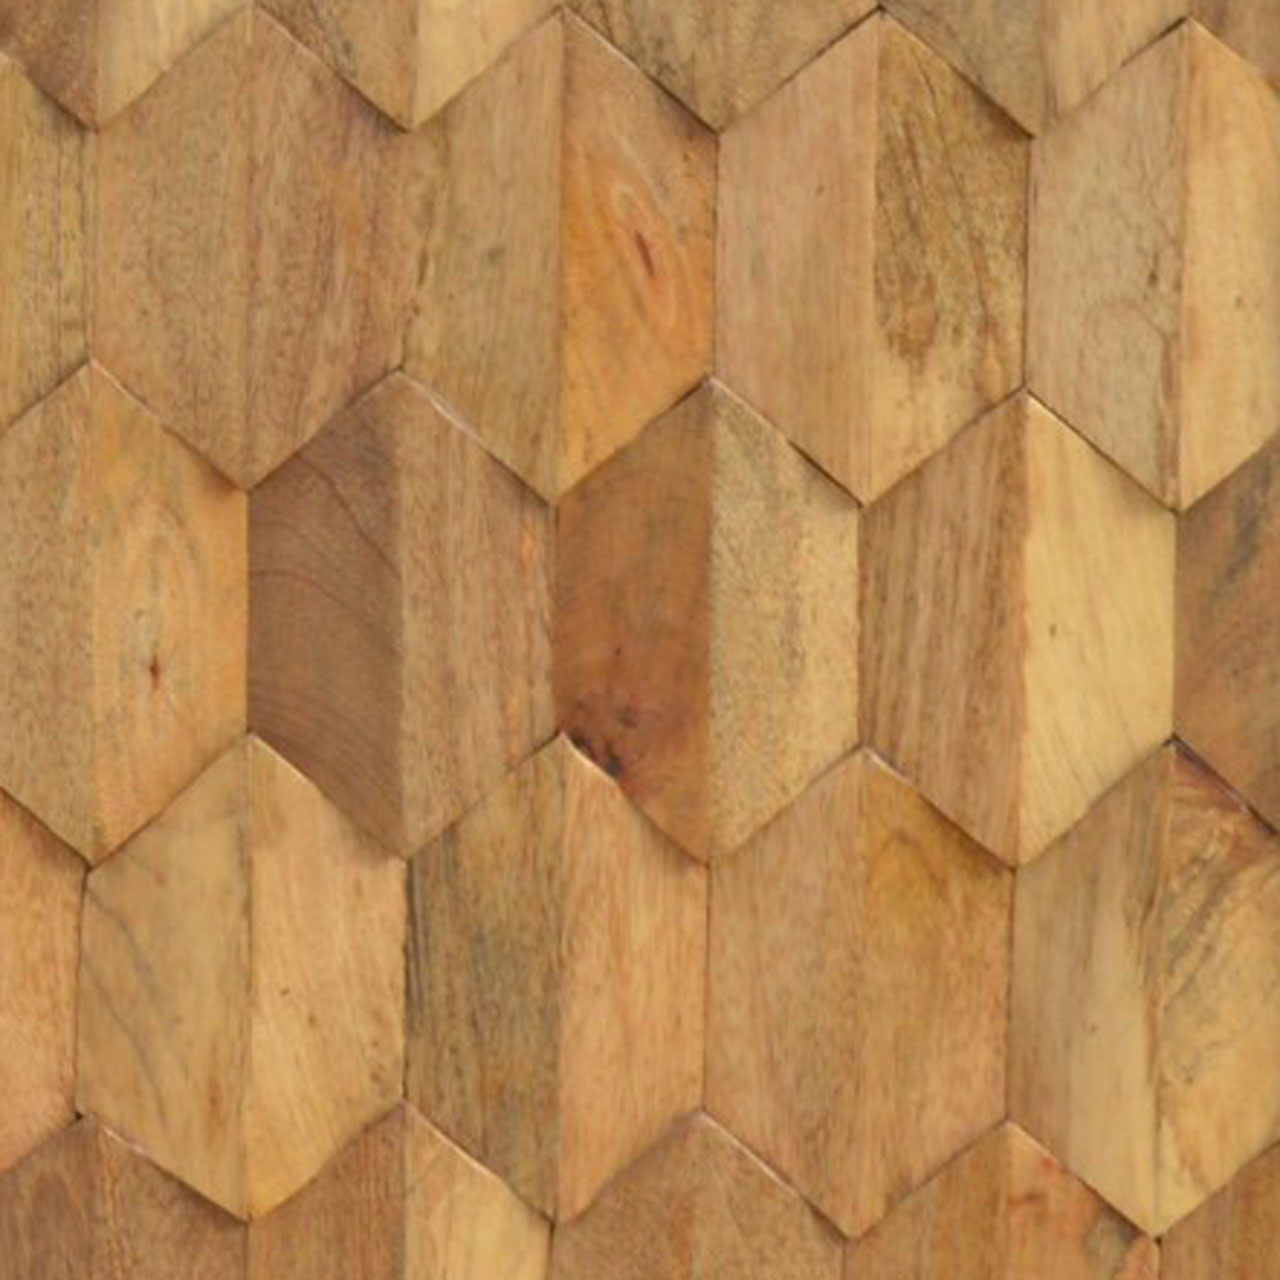 PINEAPPLE PATTERN WOOD INLAY